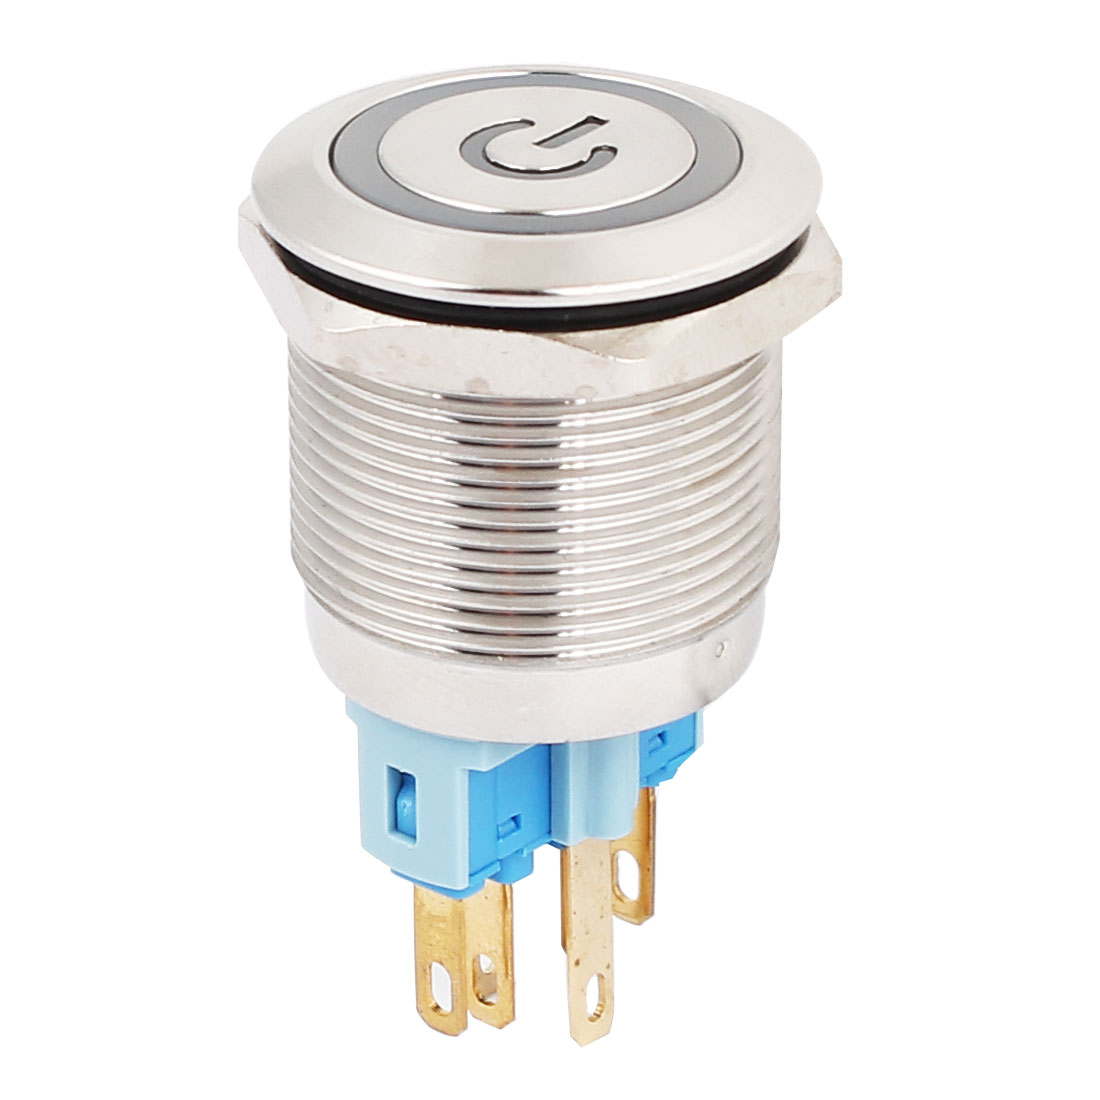 24V 22mm Dia Thread Blue LED Lamp Latching Metal Power Pushbutton Switch